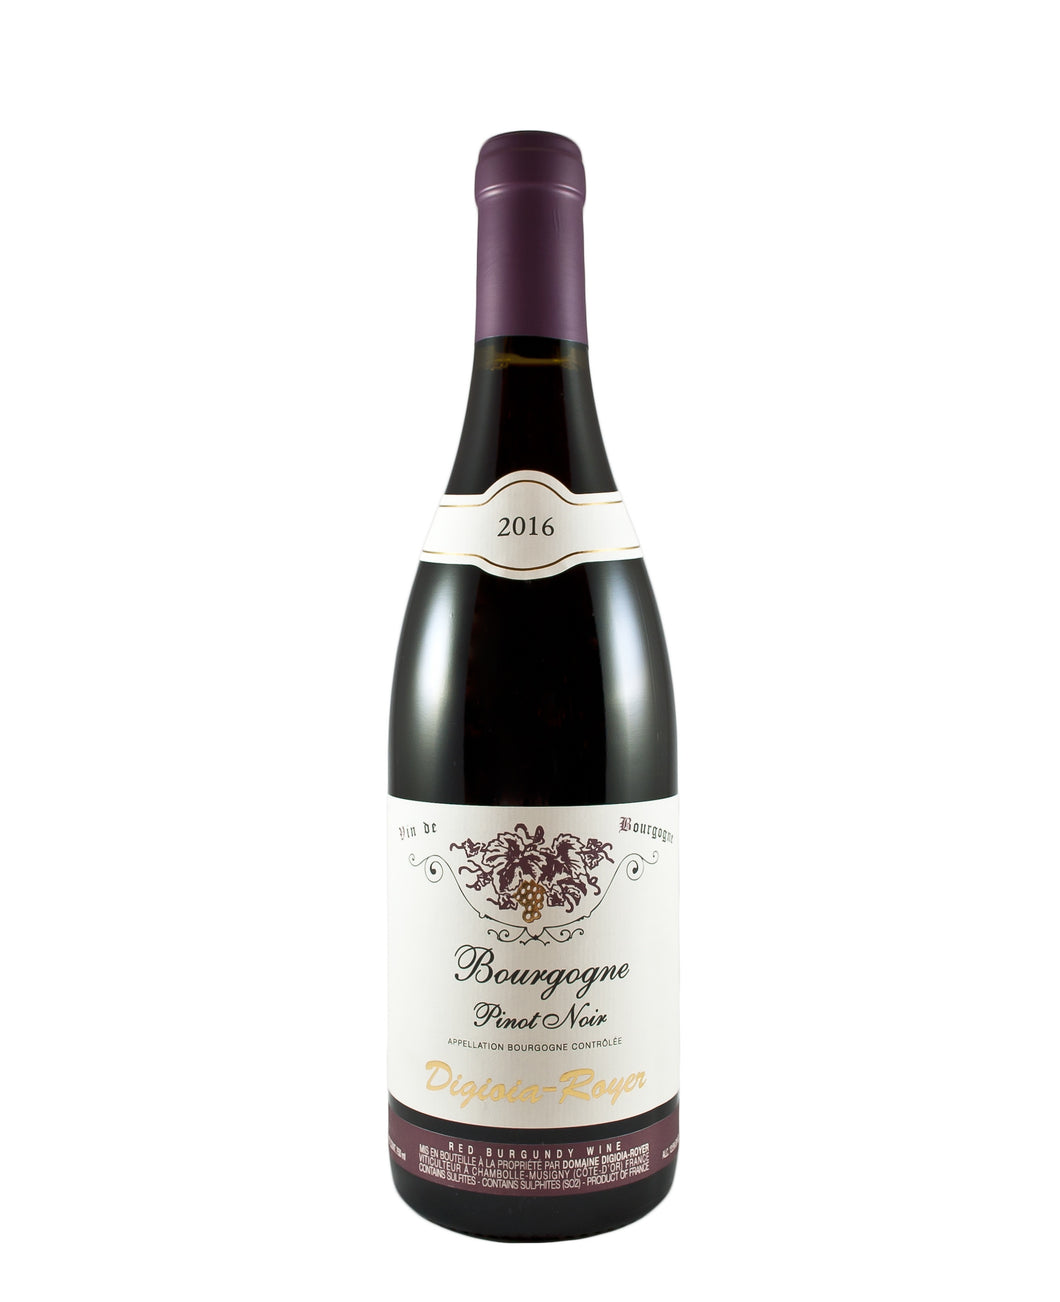 *1R* 2016 Digioia-Royer Bourgogne Rouge (Burgundy, FR)